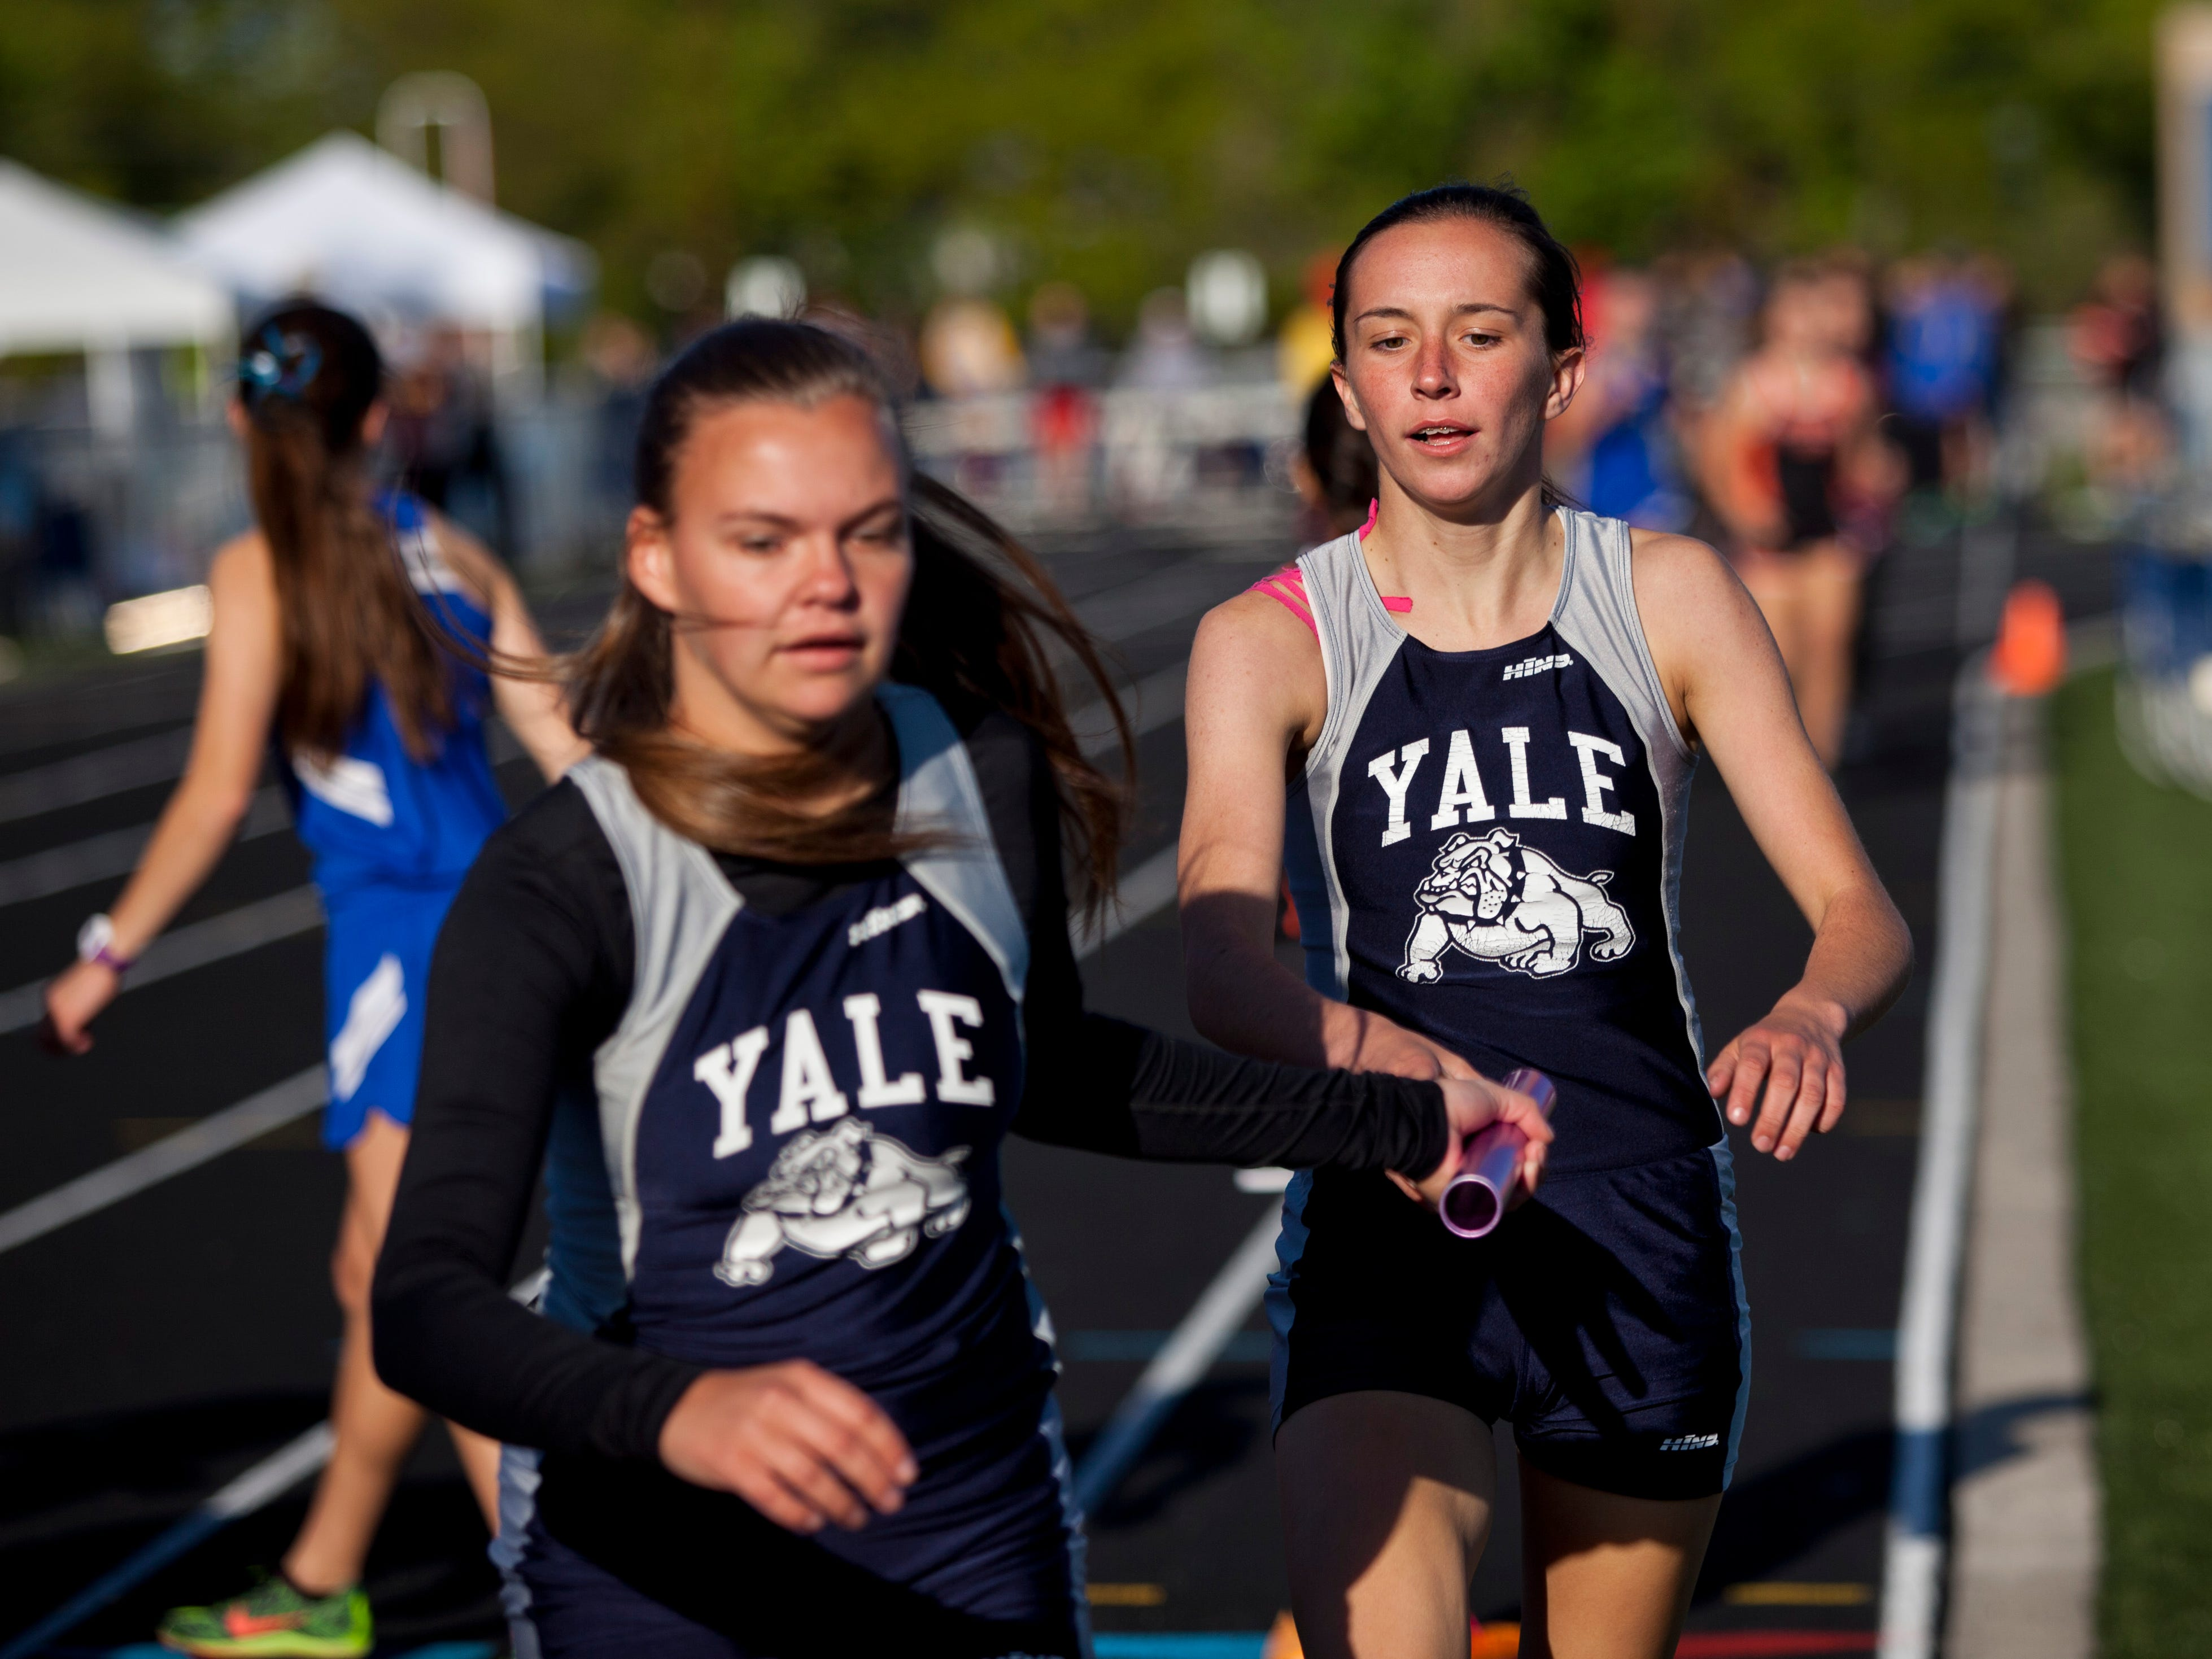 Yale junior Megan Dunsmore hands off the baton to sophomore Sophie Kincaid as they compete in the 2-mile relay during the Meet of Champions Friday, May 22, 2015 at Marysville High School.